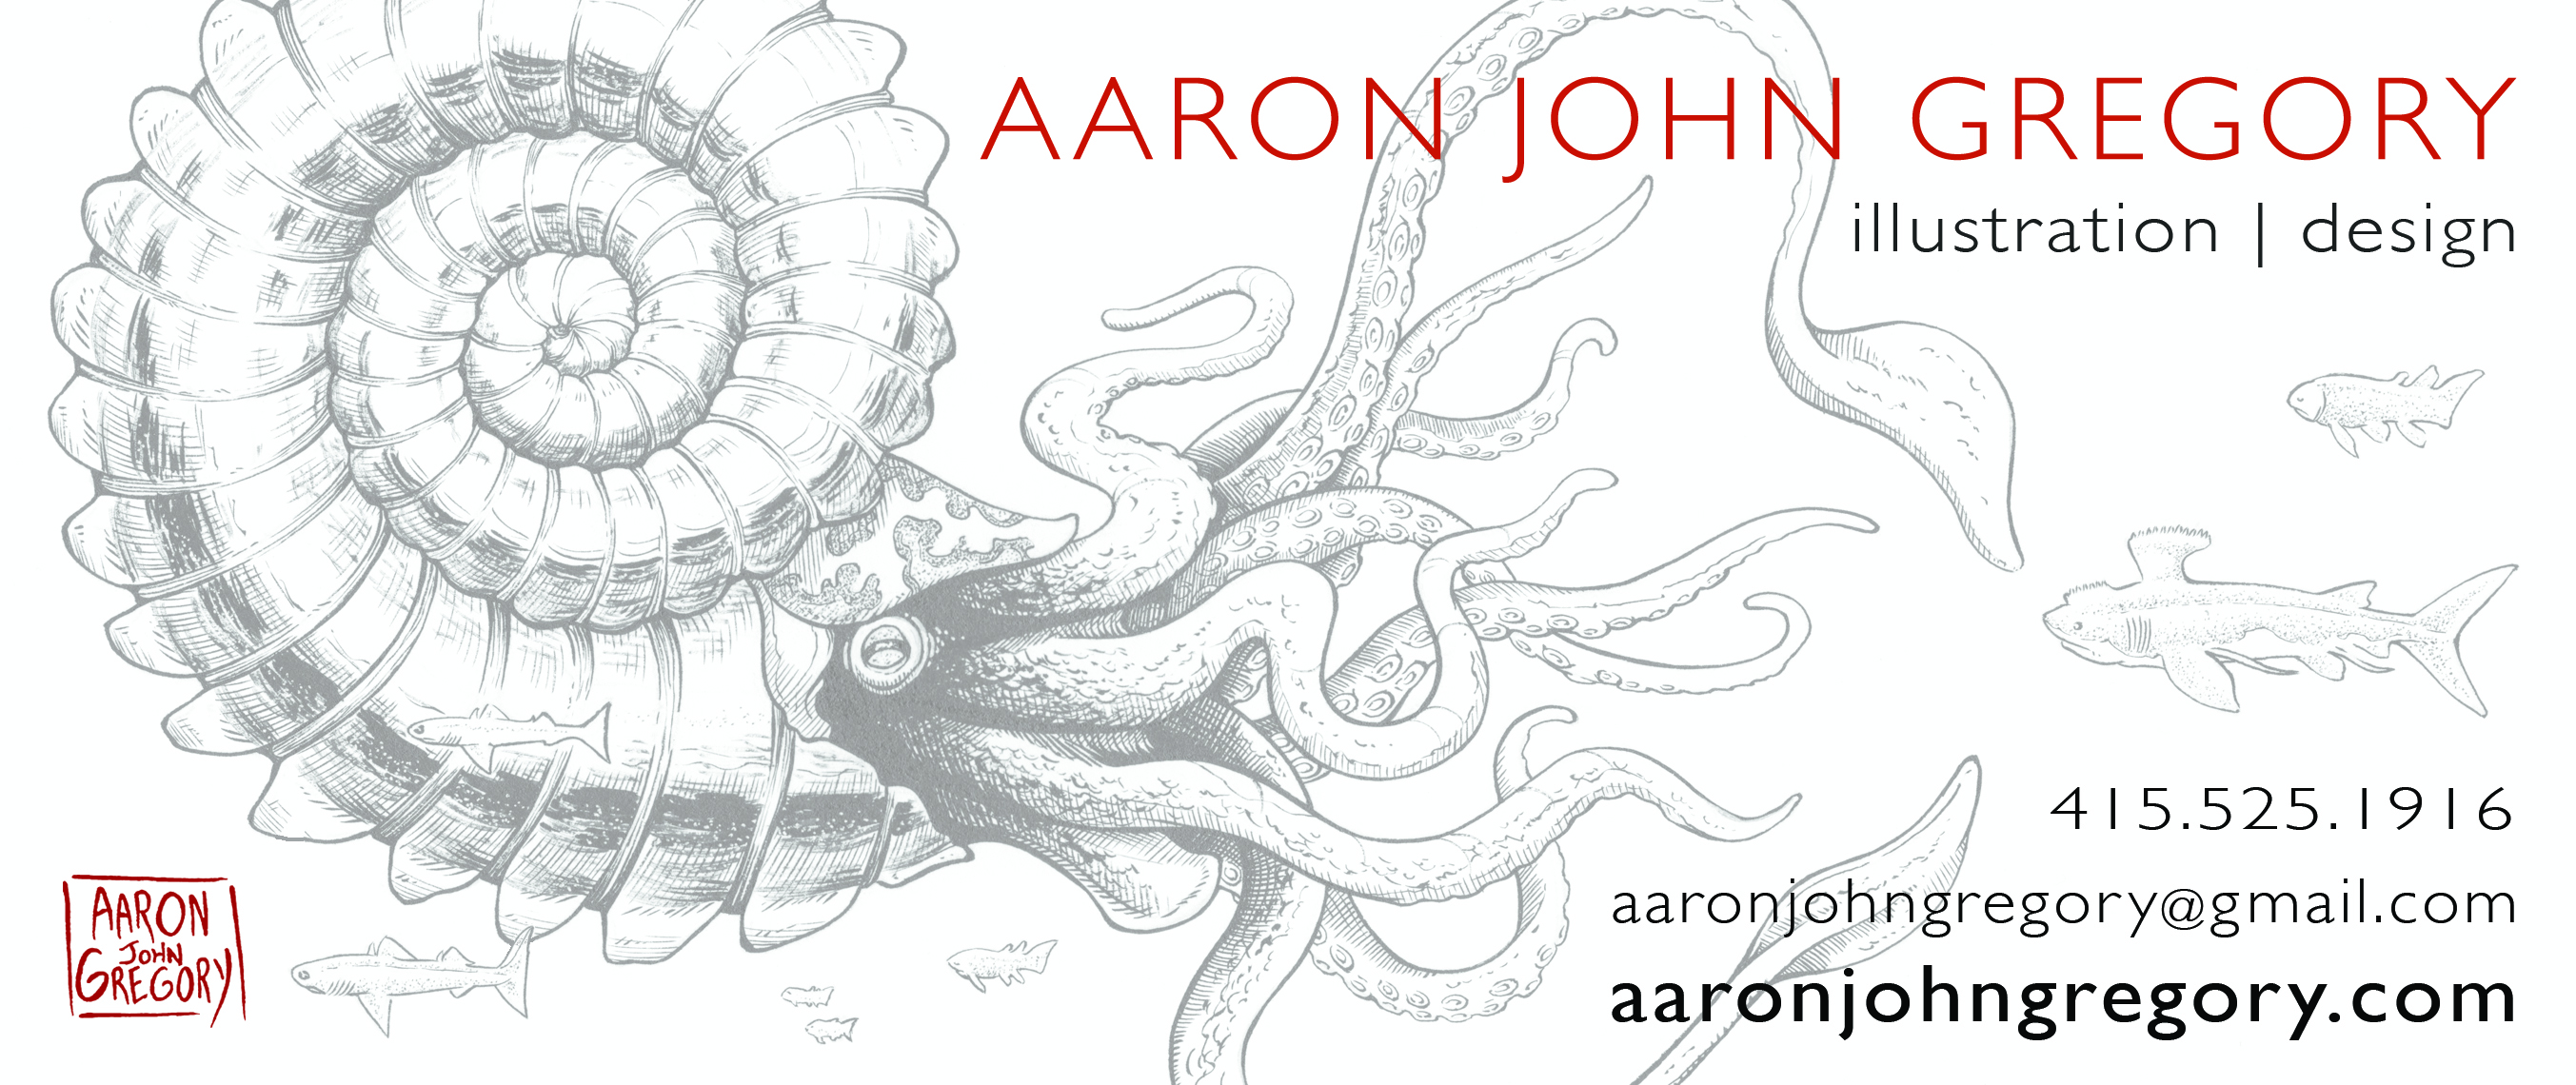 A.Gregory 2015 business card